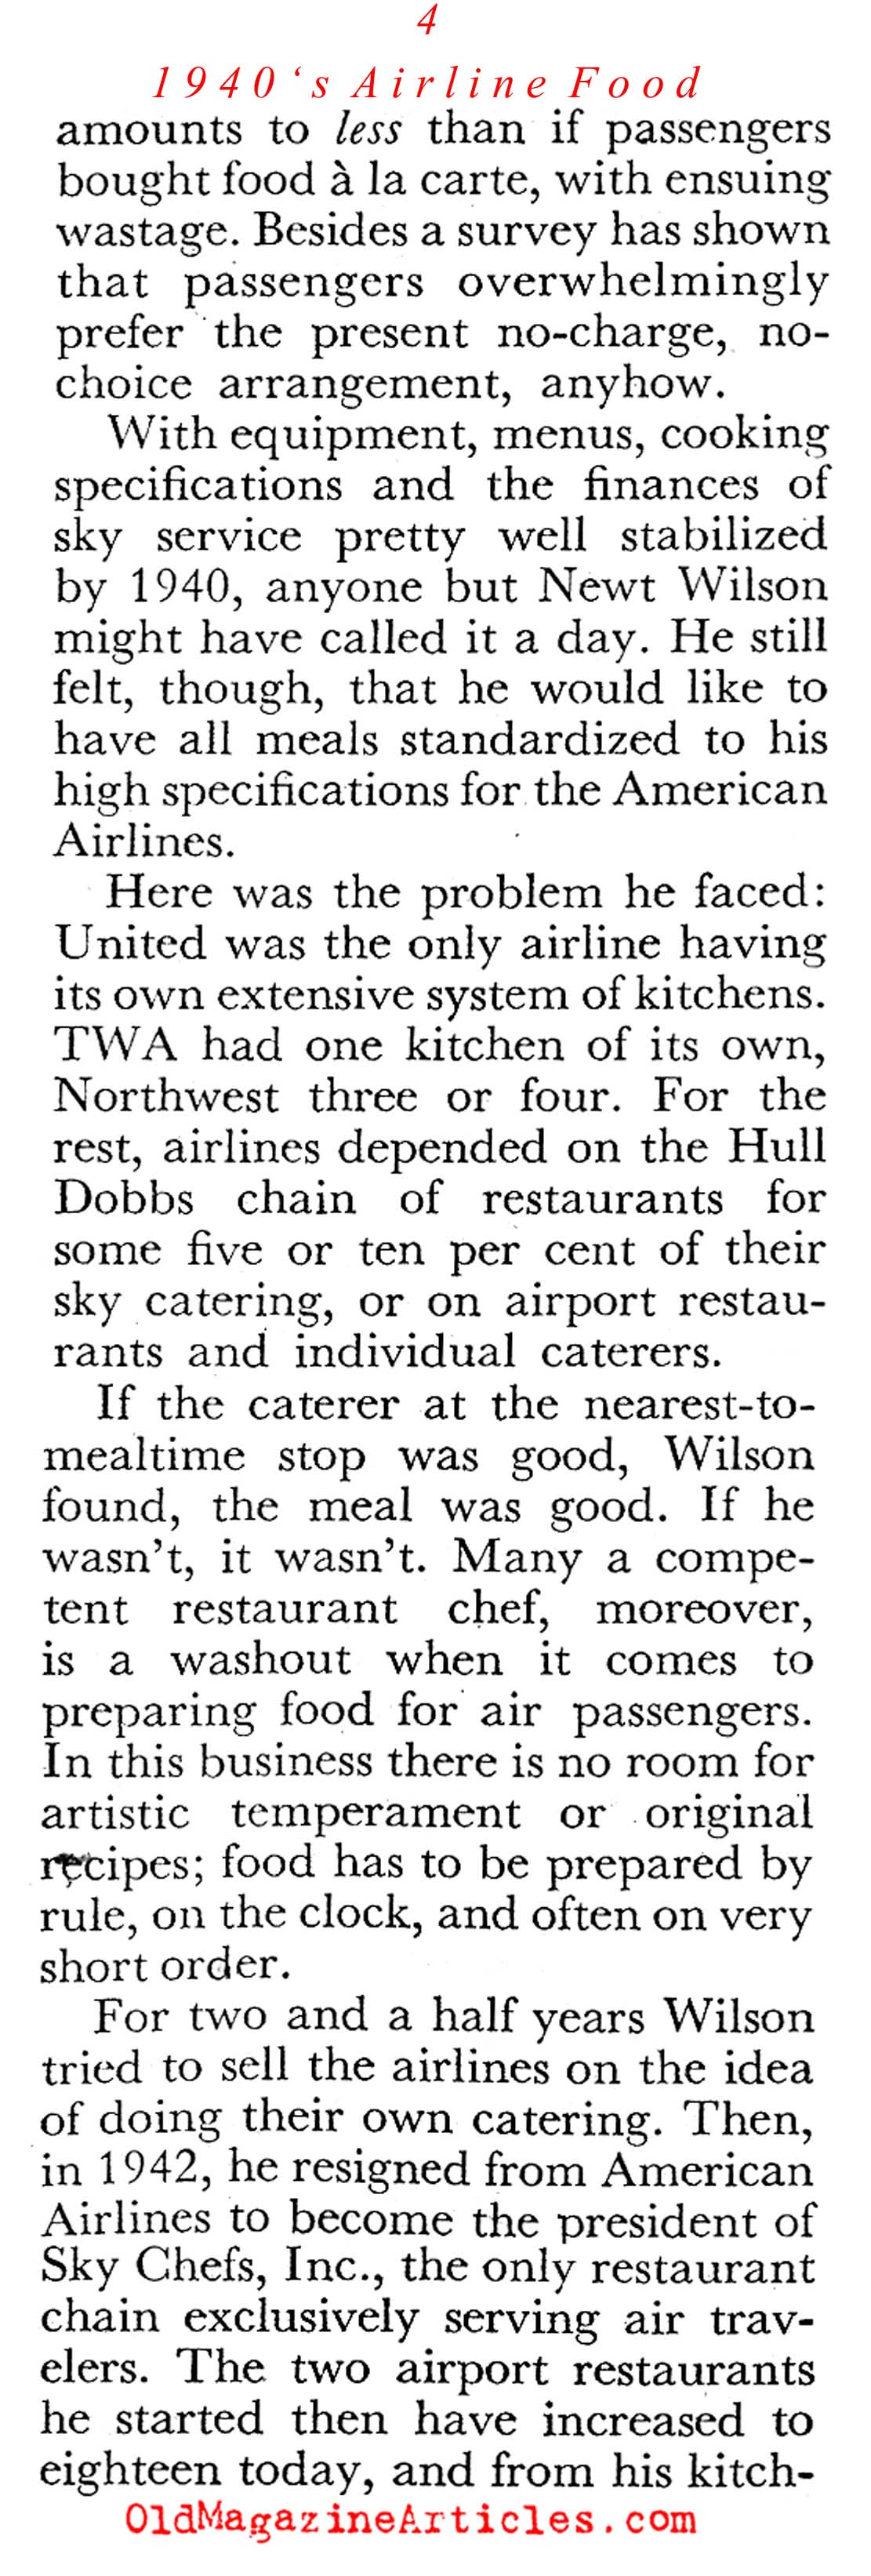 The Birth of Airline Food (Coronet Magazine, 1945)